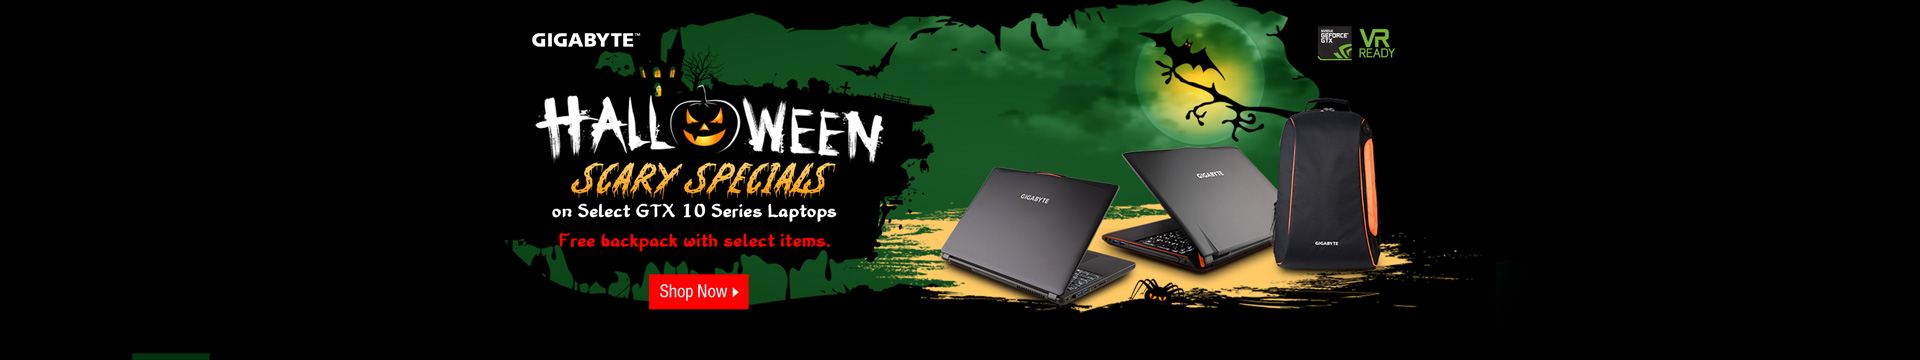 Halloween scary specials on GTX 10 series laptops